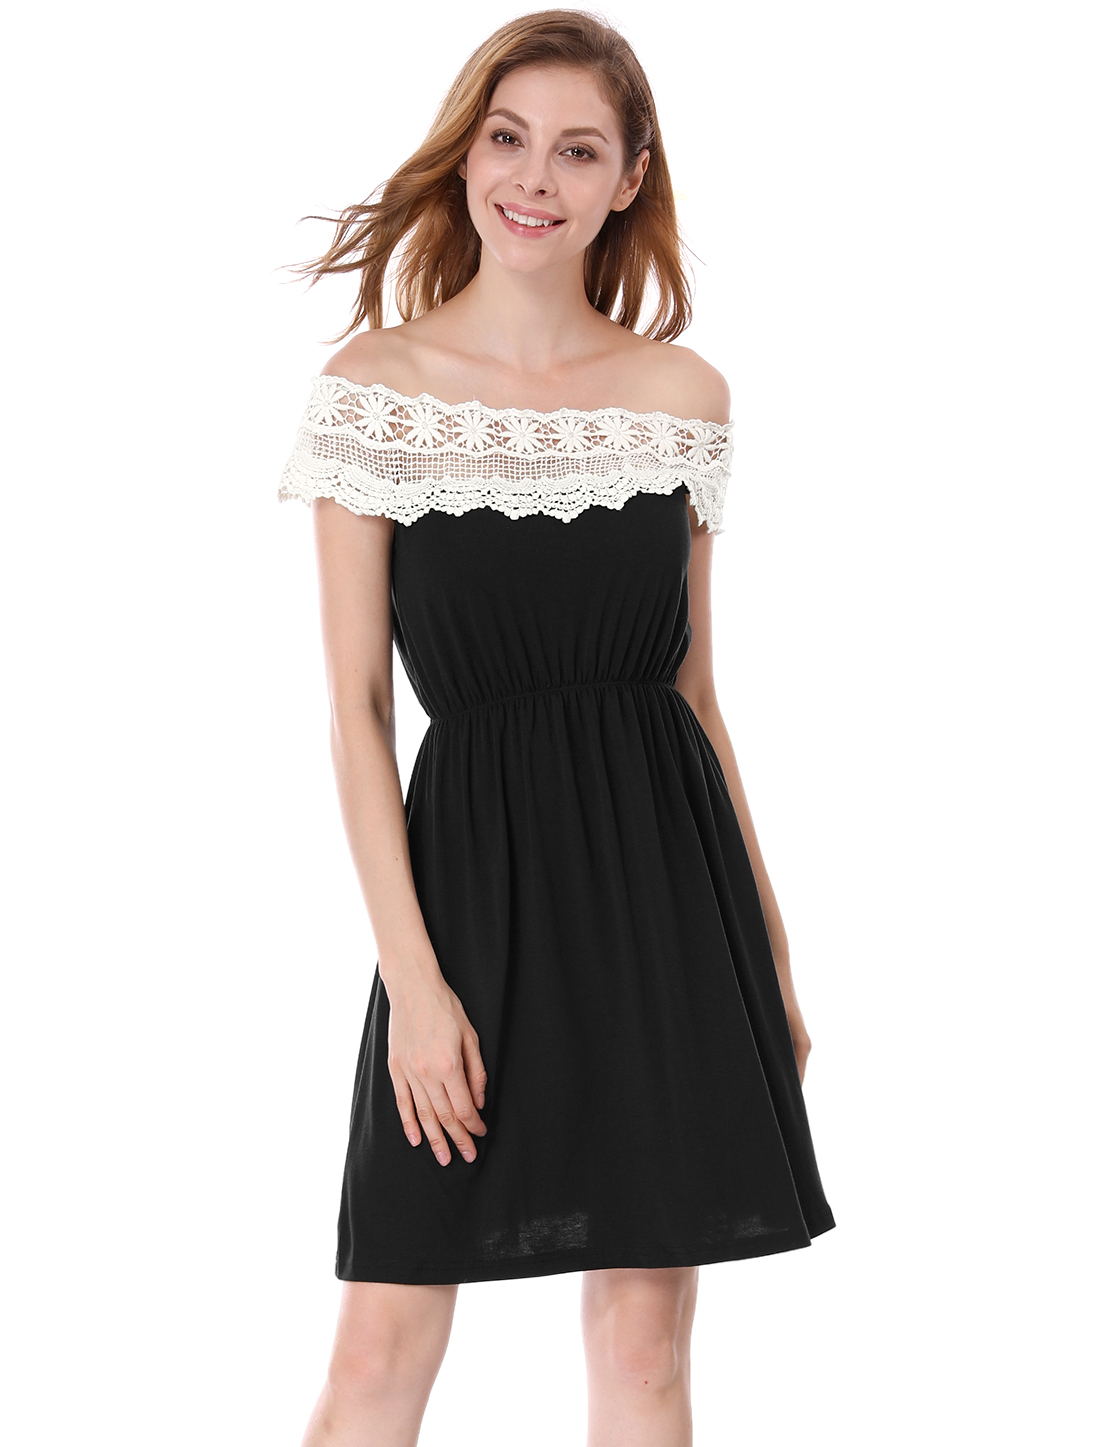 White Crotcheted Lace Boat Neck Black Sleeveless Mini Dress for Lady XS